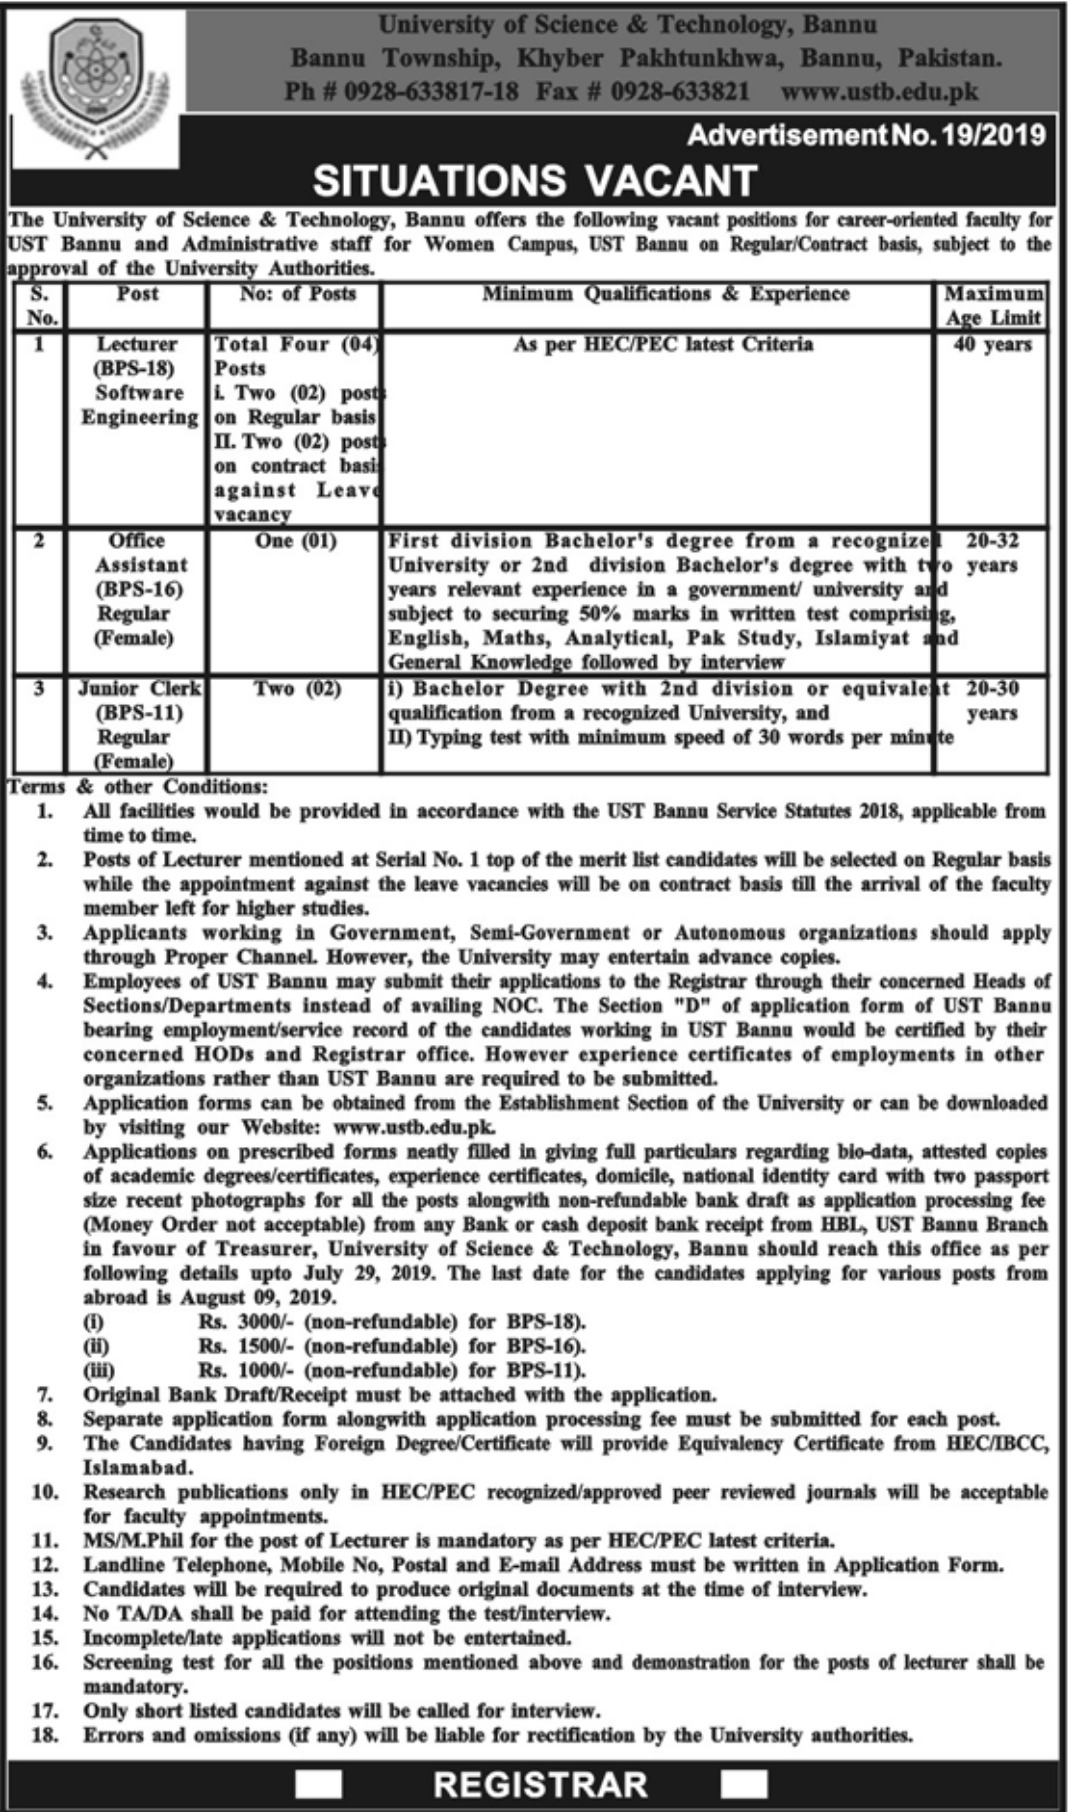 University of Science & Technology Bannu Jobs 2019 KPK